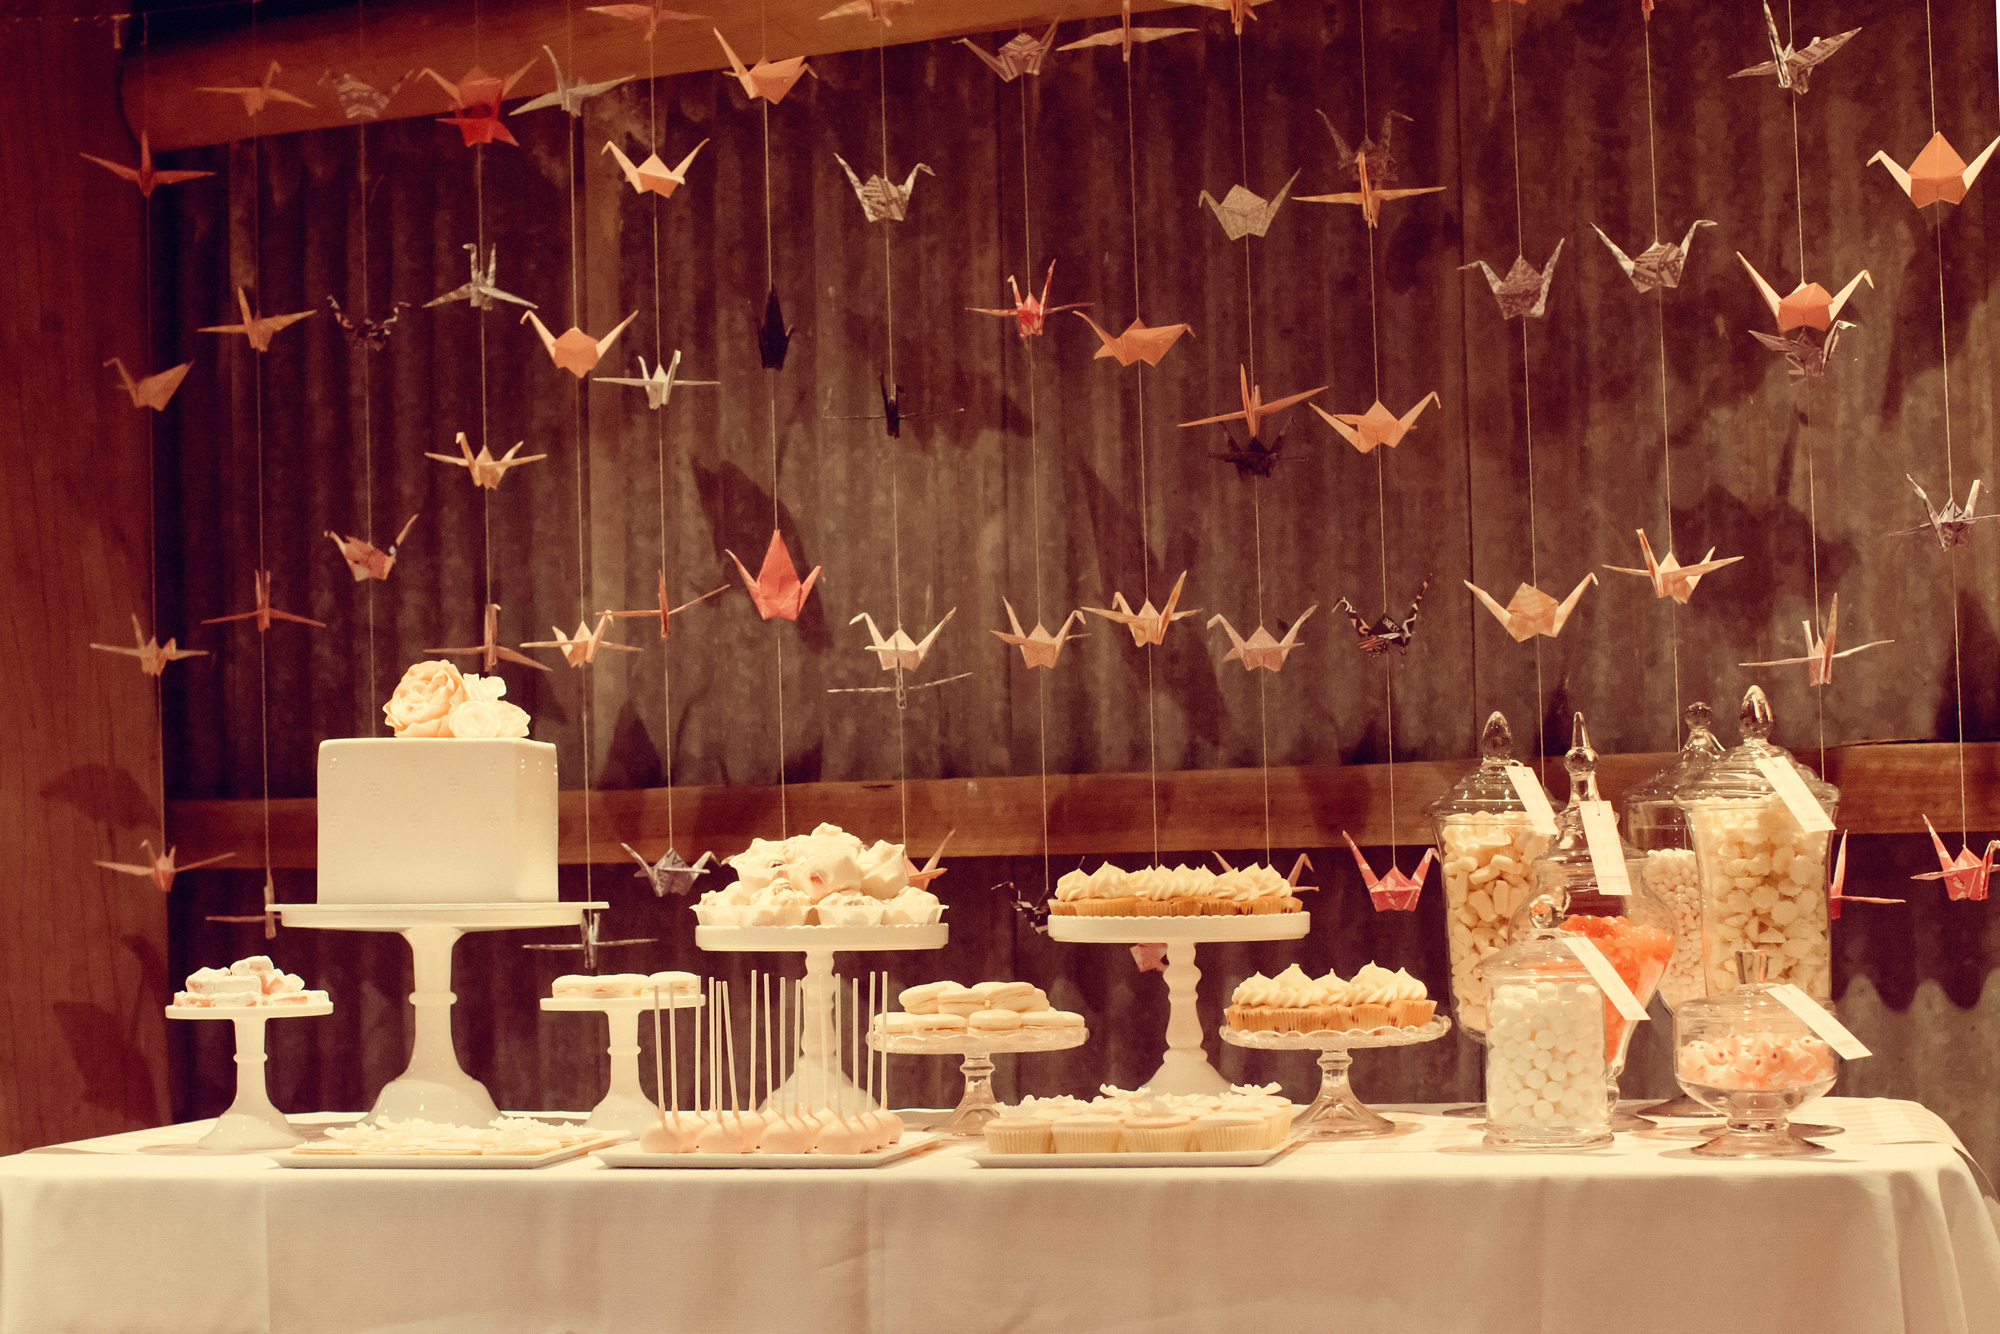 10 Delicious Wedding Dessert Table Ideas For Every Type of Bride